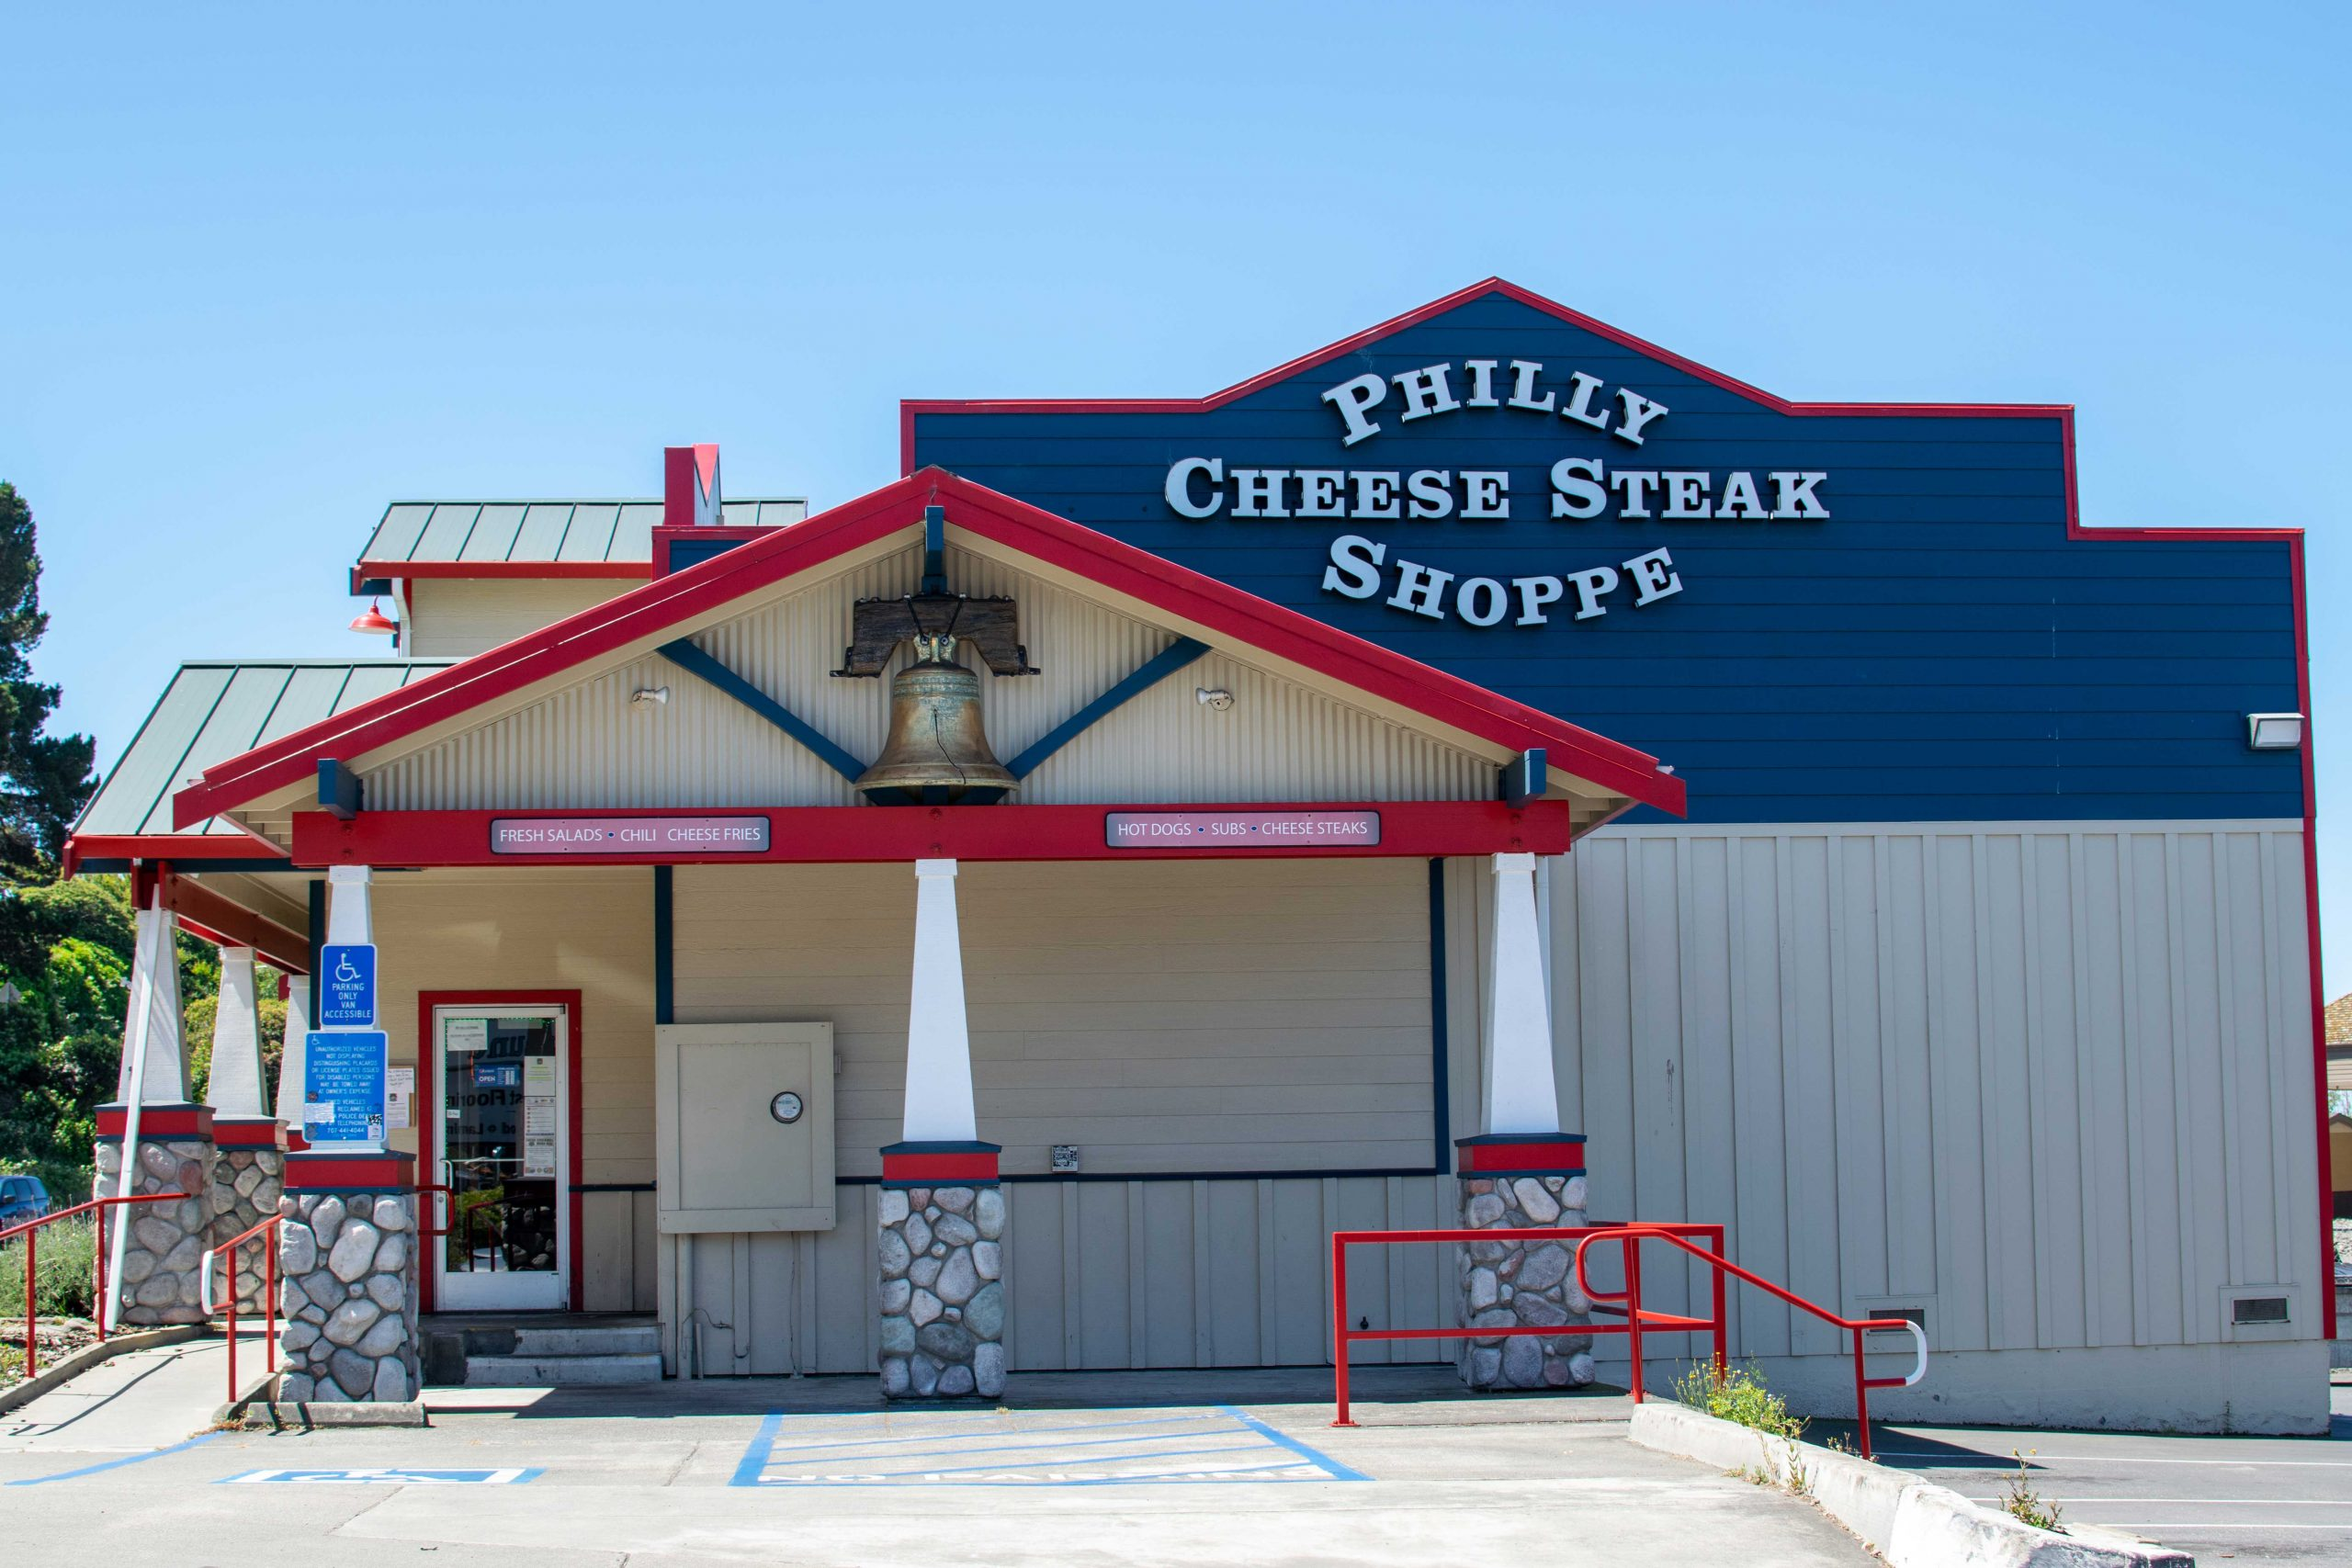 Philly Cheese Steak Shoppe